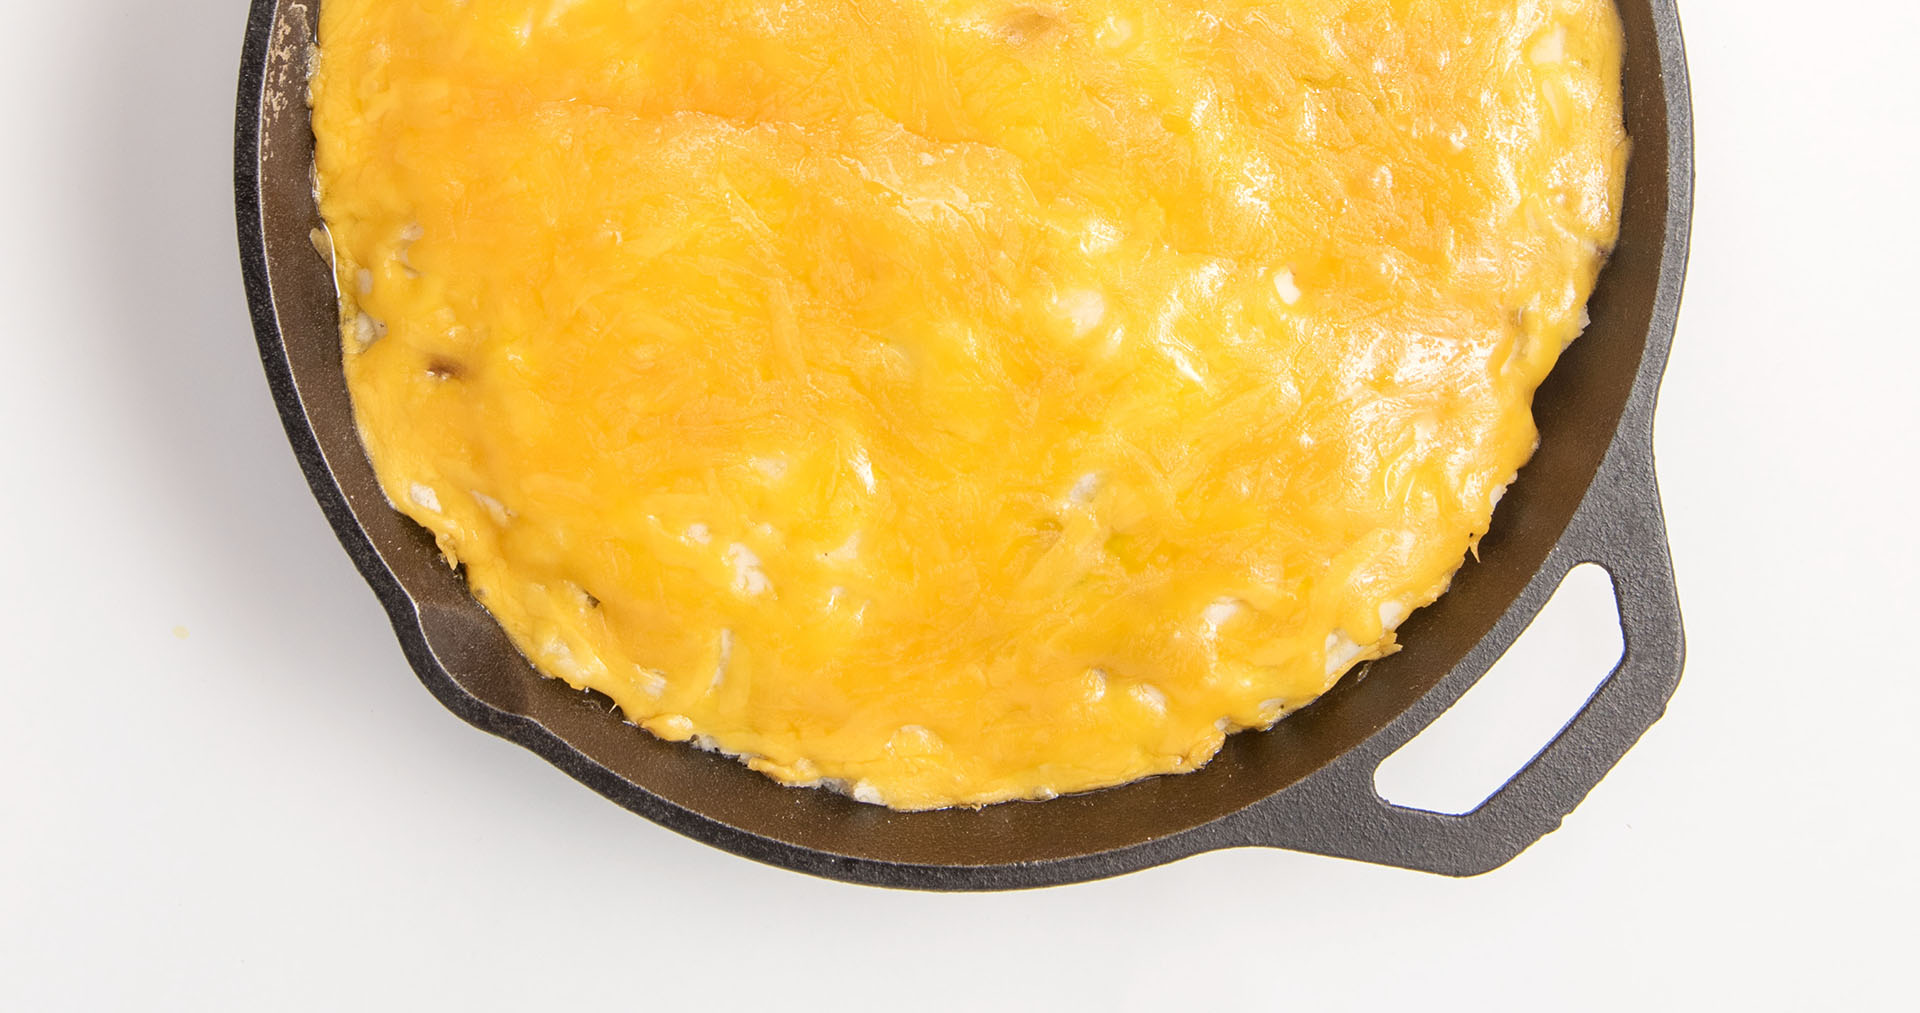 An iron skillet filled with Shepherd's Pie; a recipe using ground beef, green beans, mashed potatoes, and cheese.